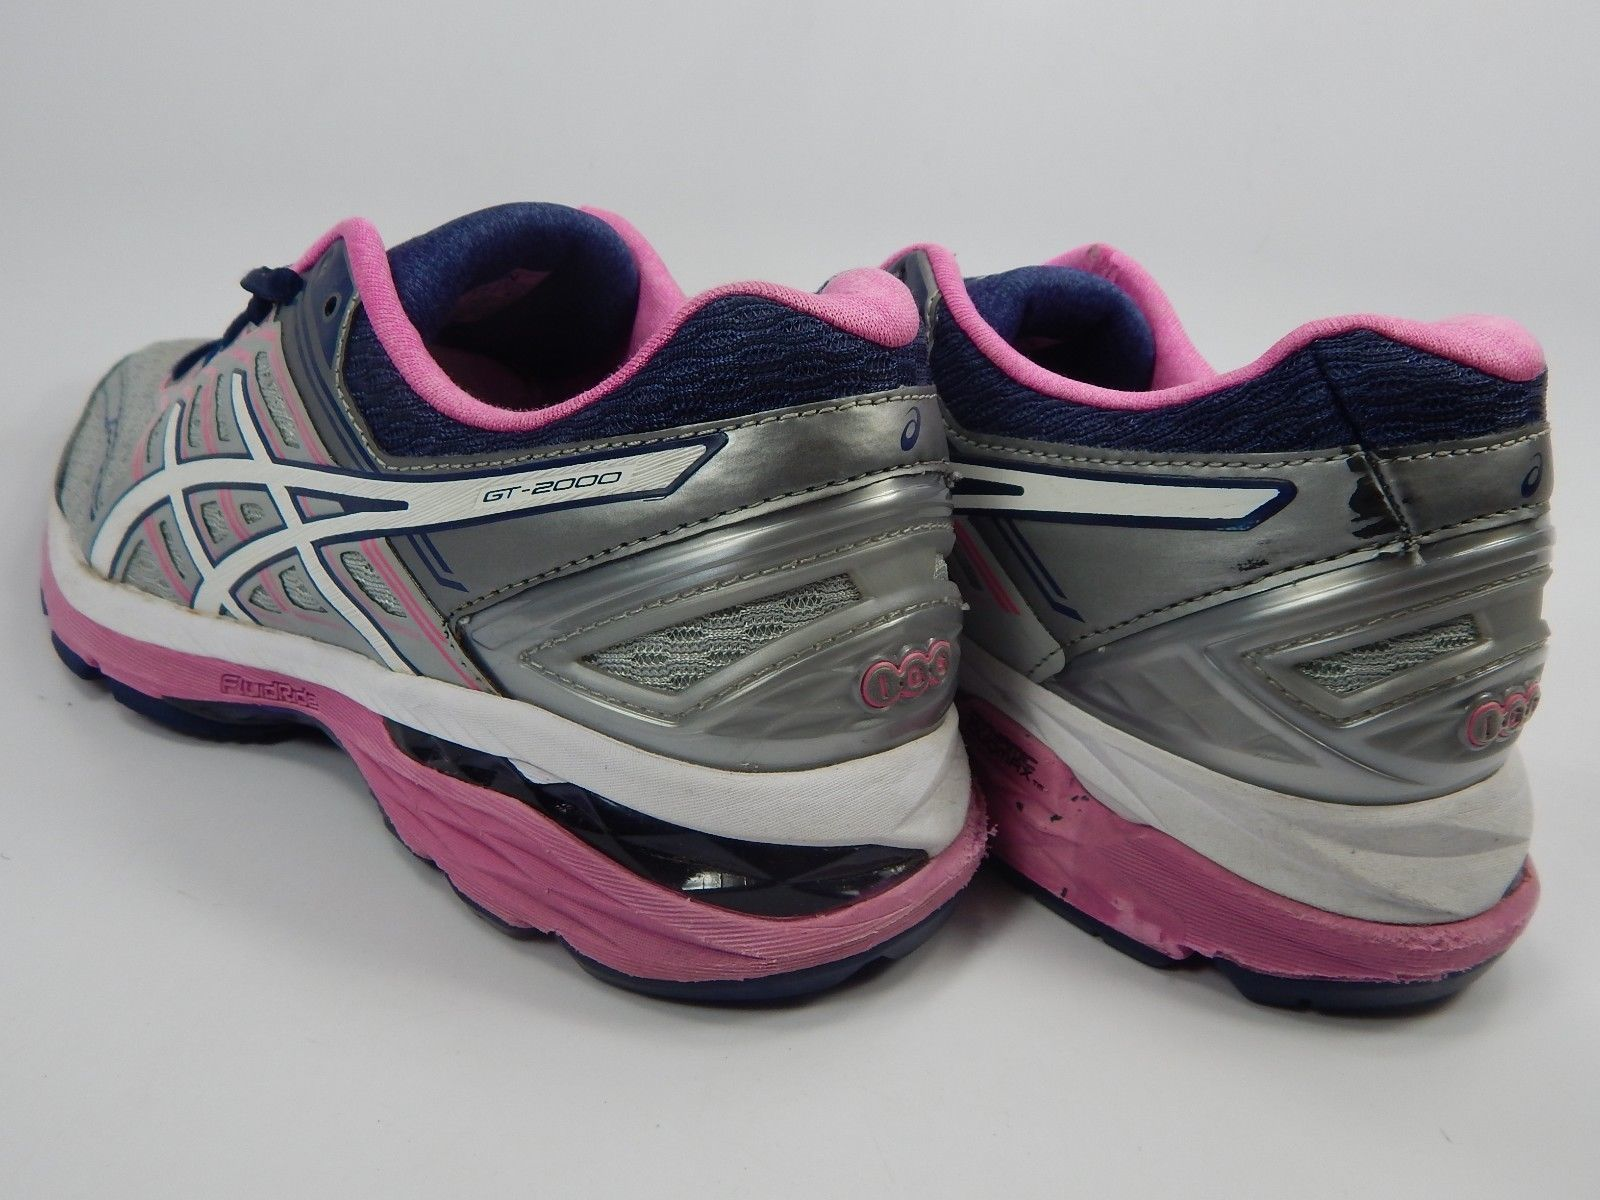 Asics GT 2000 v 5 Size US 8.5 M (B) EU: 40 Women's Running Shoes Silver T757N